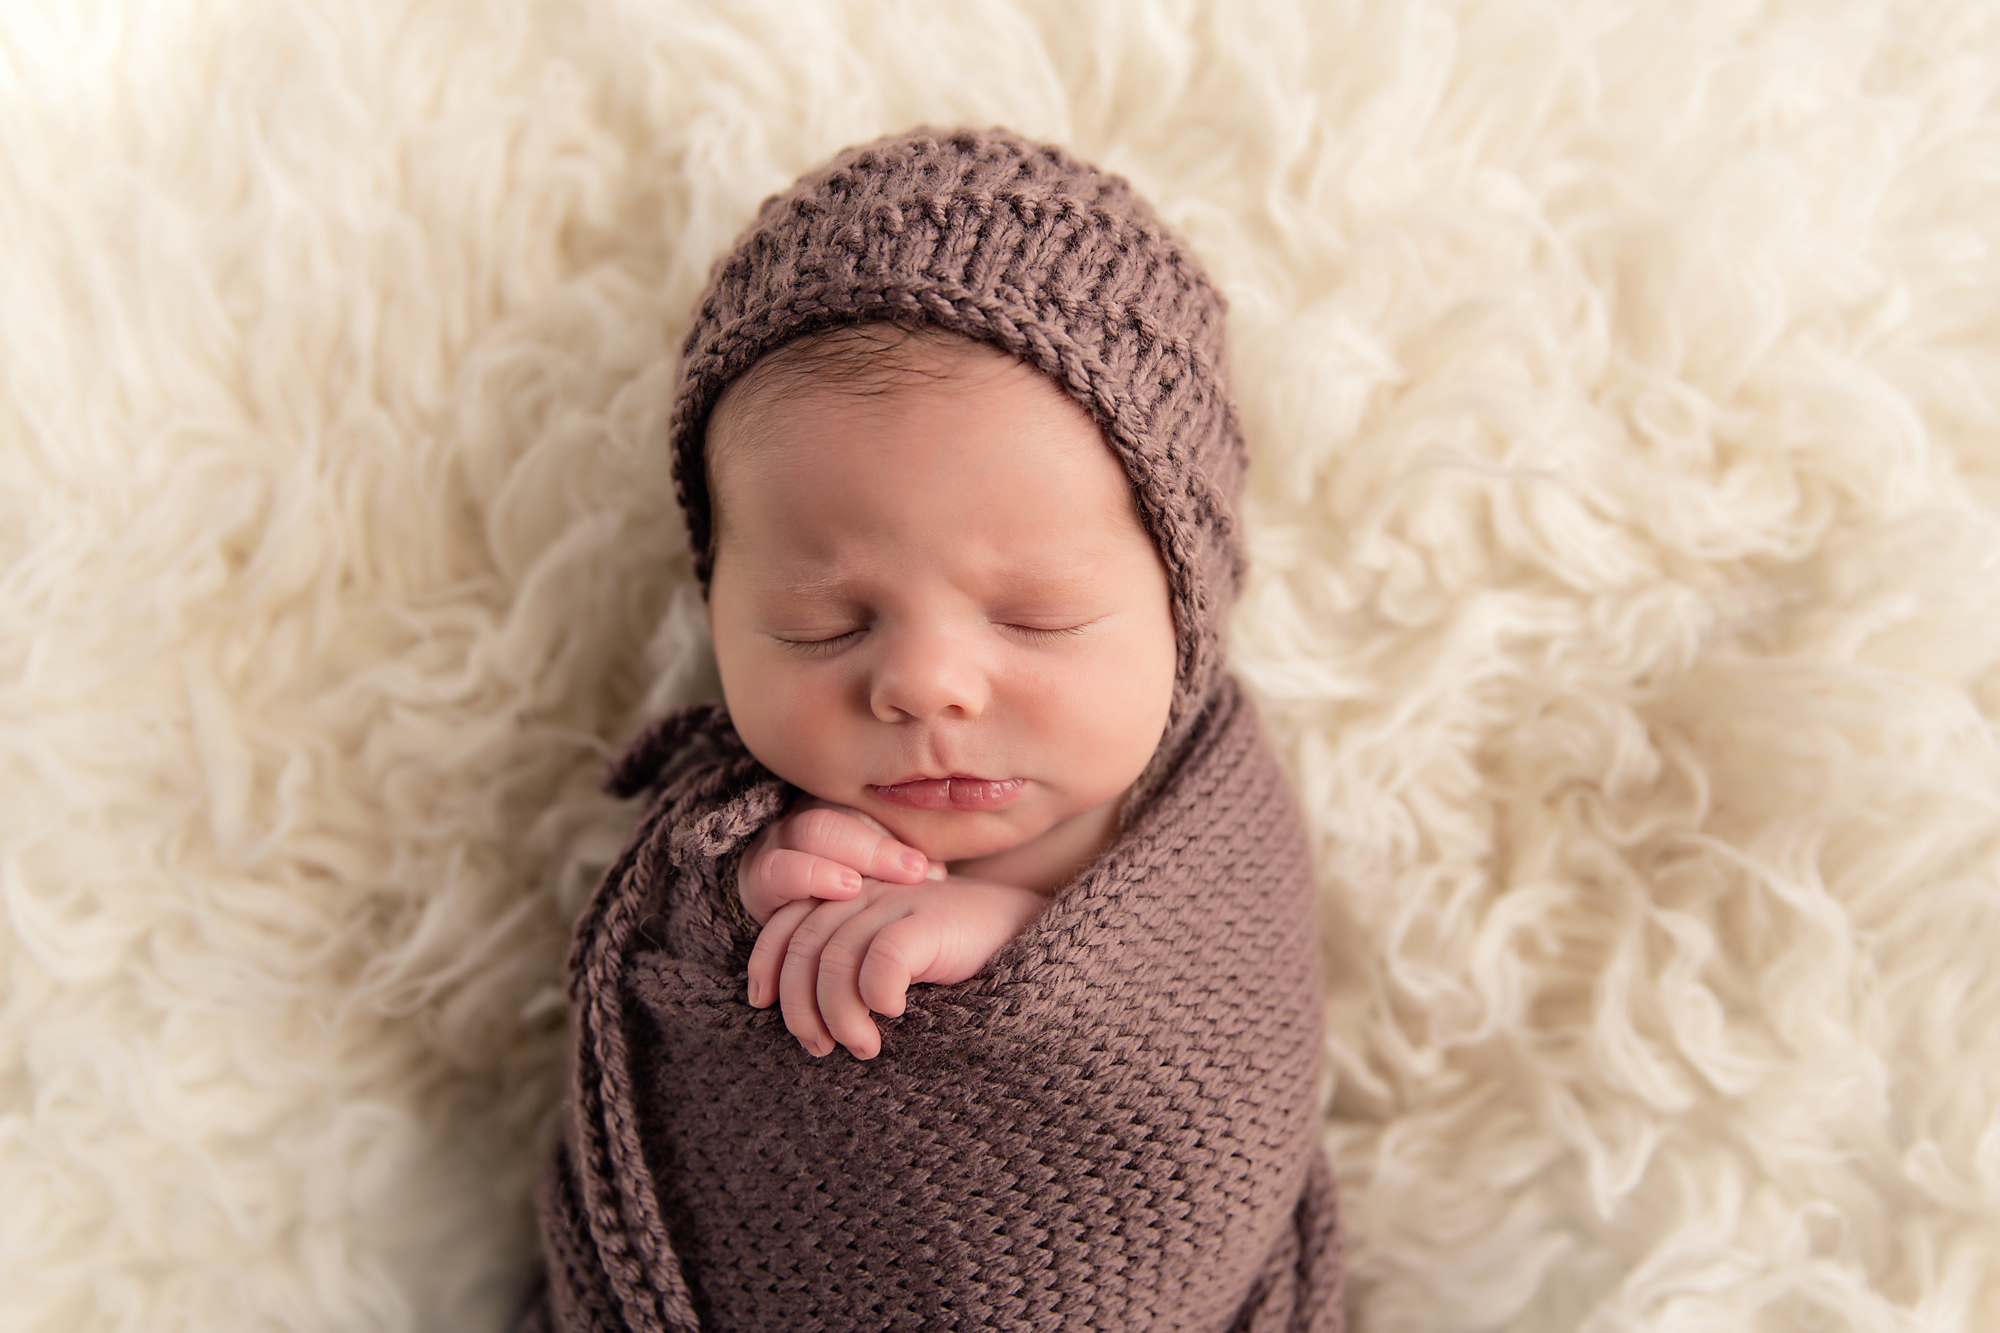 Newborn baby boy photoshoot ideas. Calgary and Airdrie newborn baby photographer - Milashka Photography. Baby boy is posed on a flokati rug wearing a brown hat and wrap.